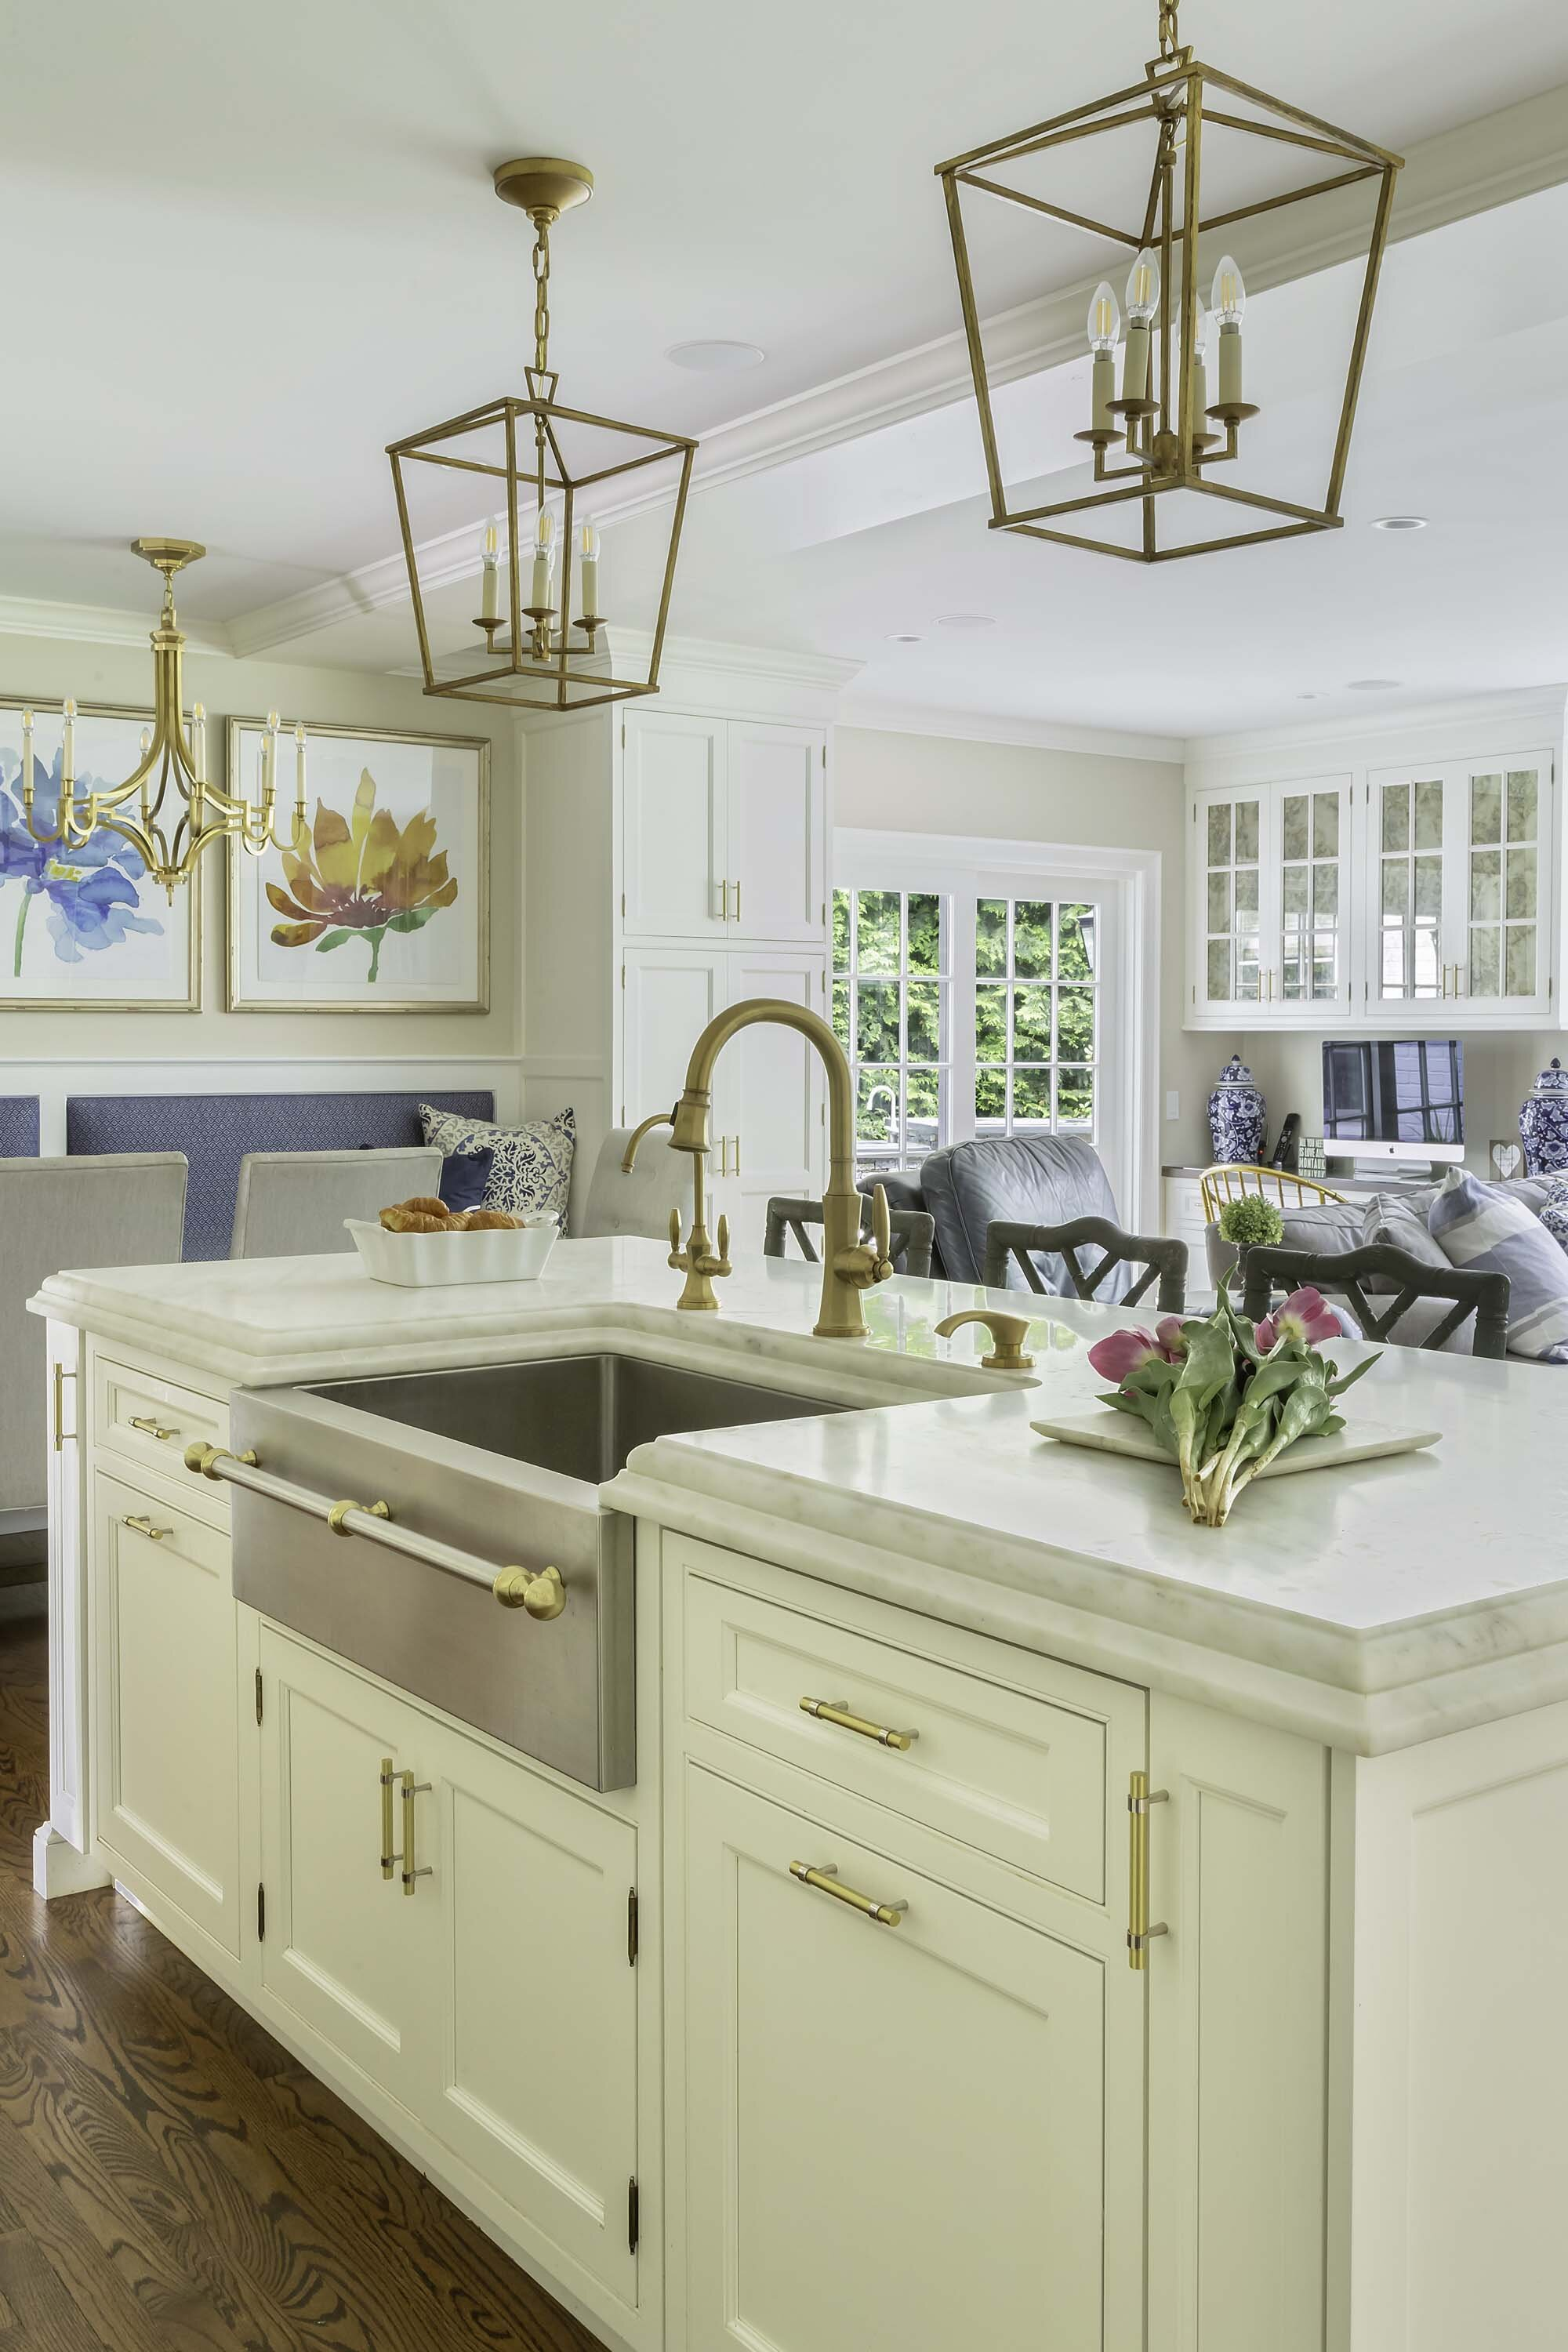 Transitional white kitchen include stainless steel farmhouse sink and brass hardware